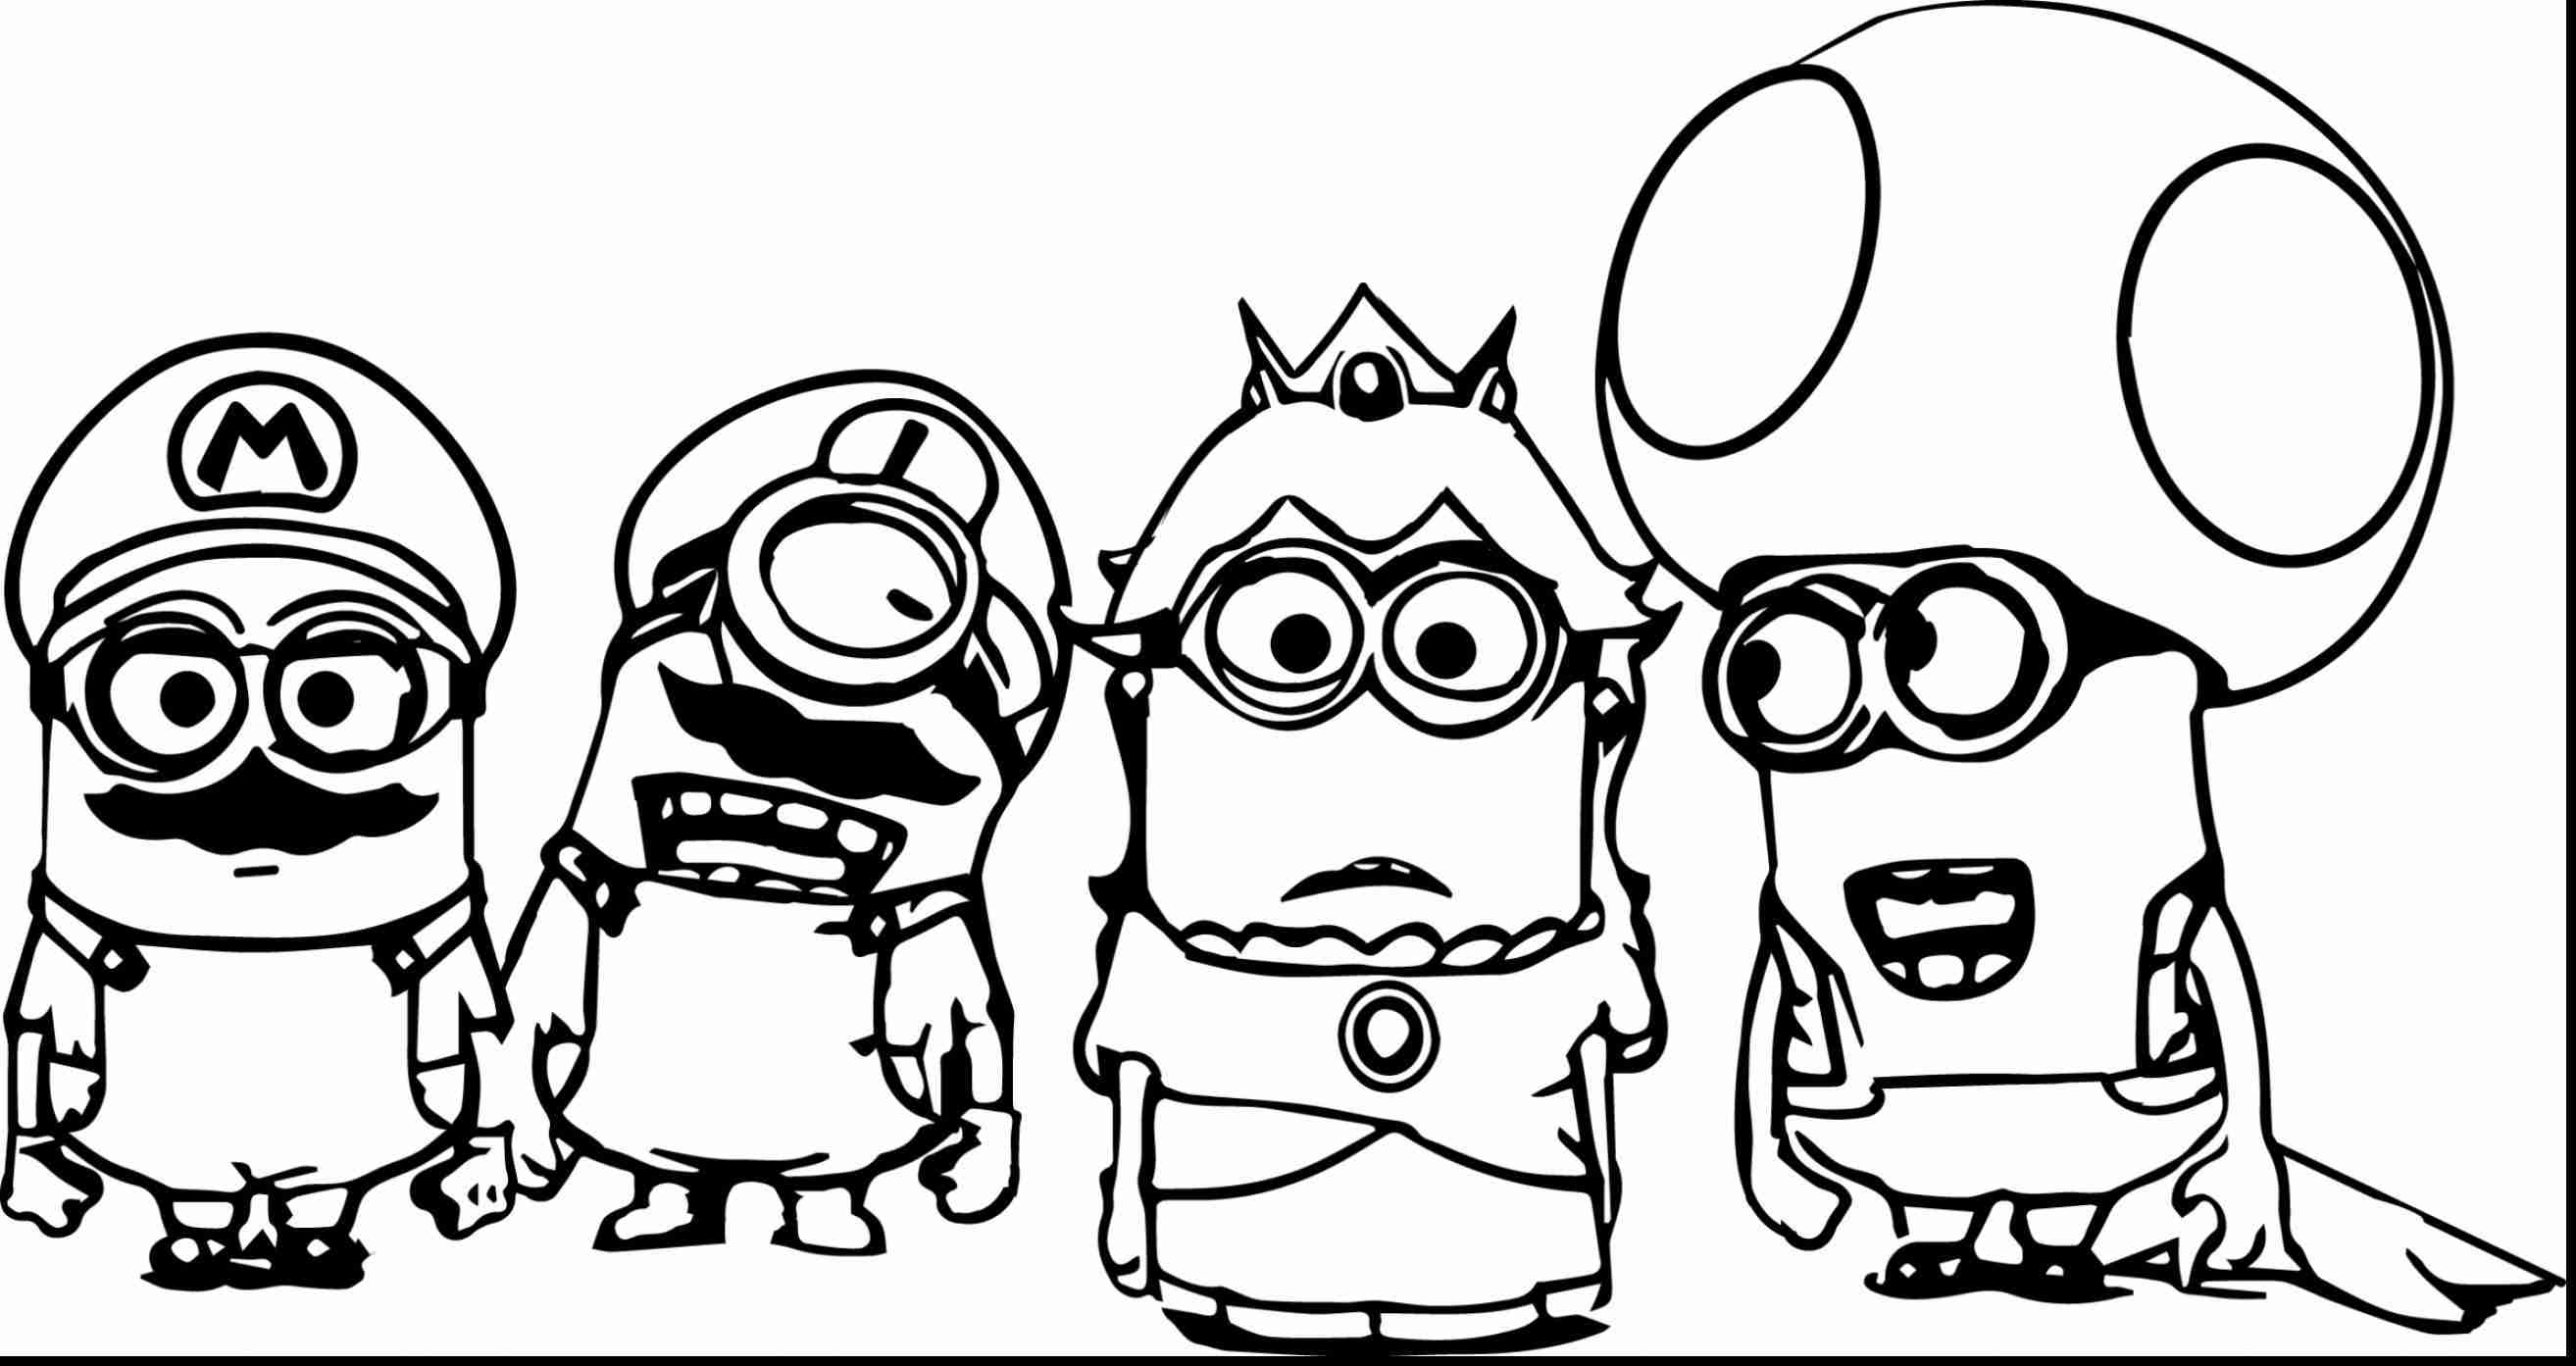 2627x1393 Magnificent Minion Printable Coloring Pages With Free Beautiful